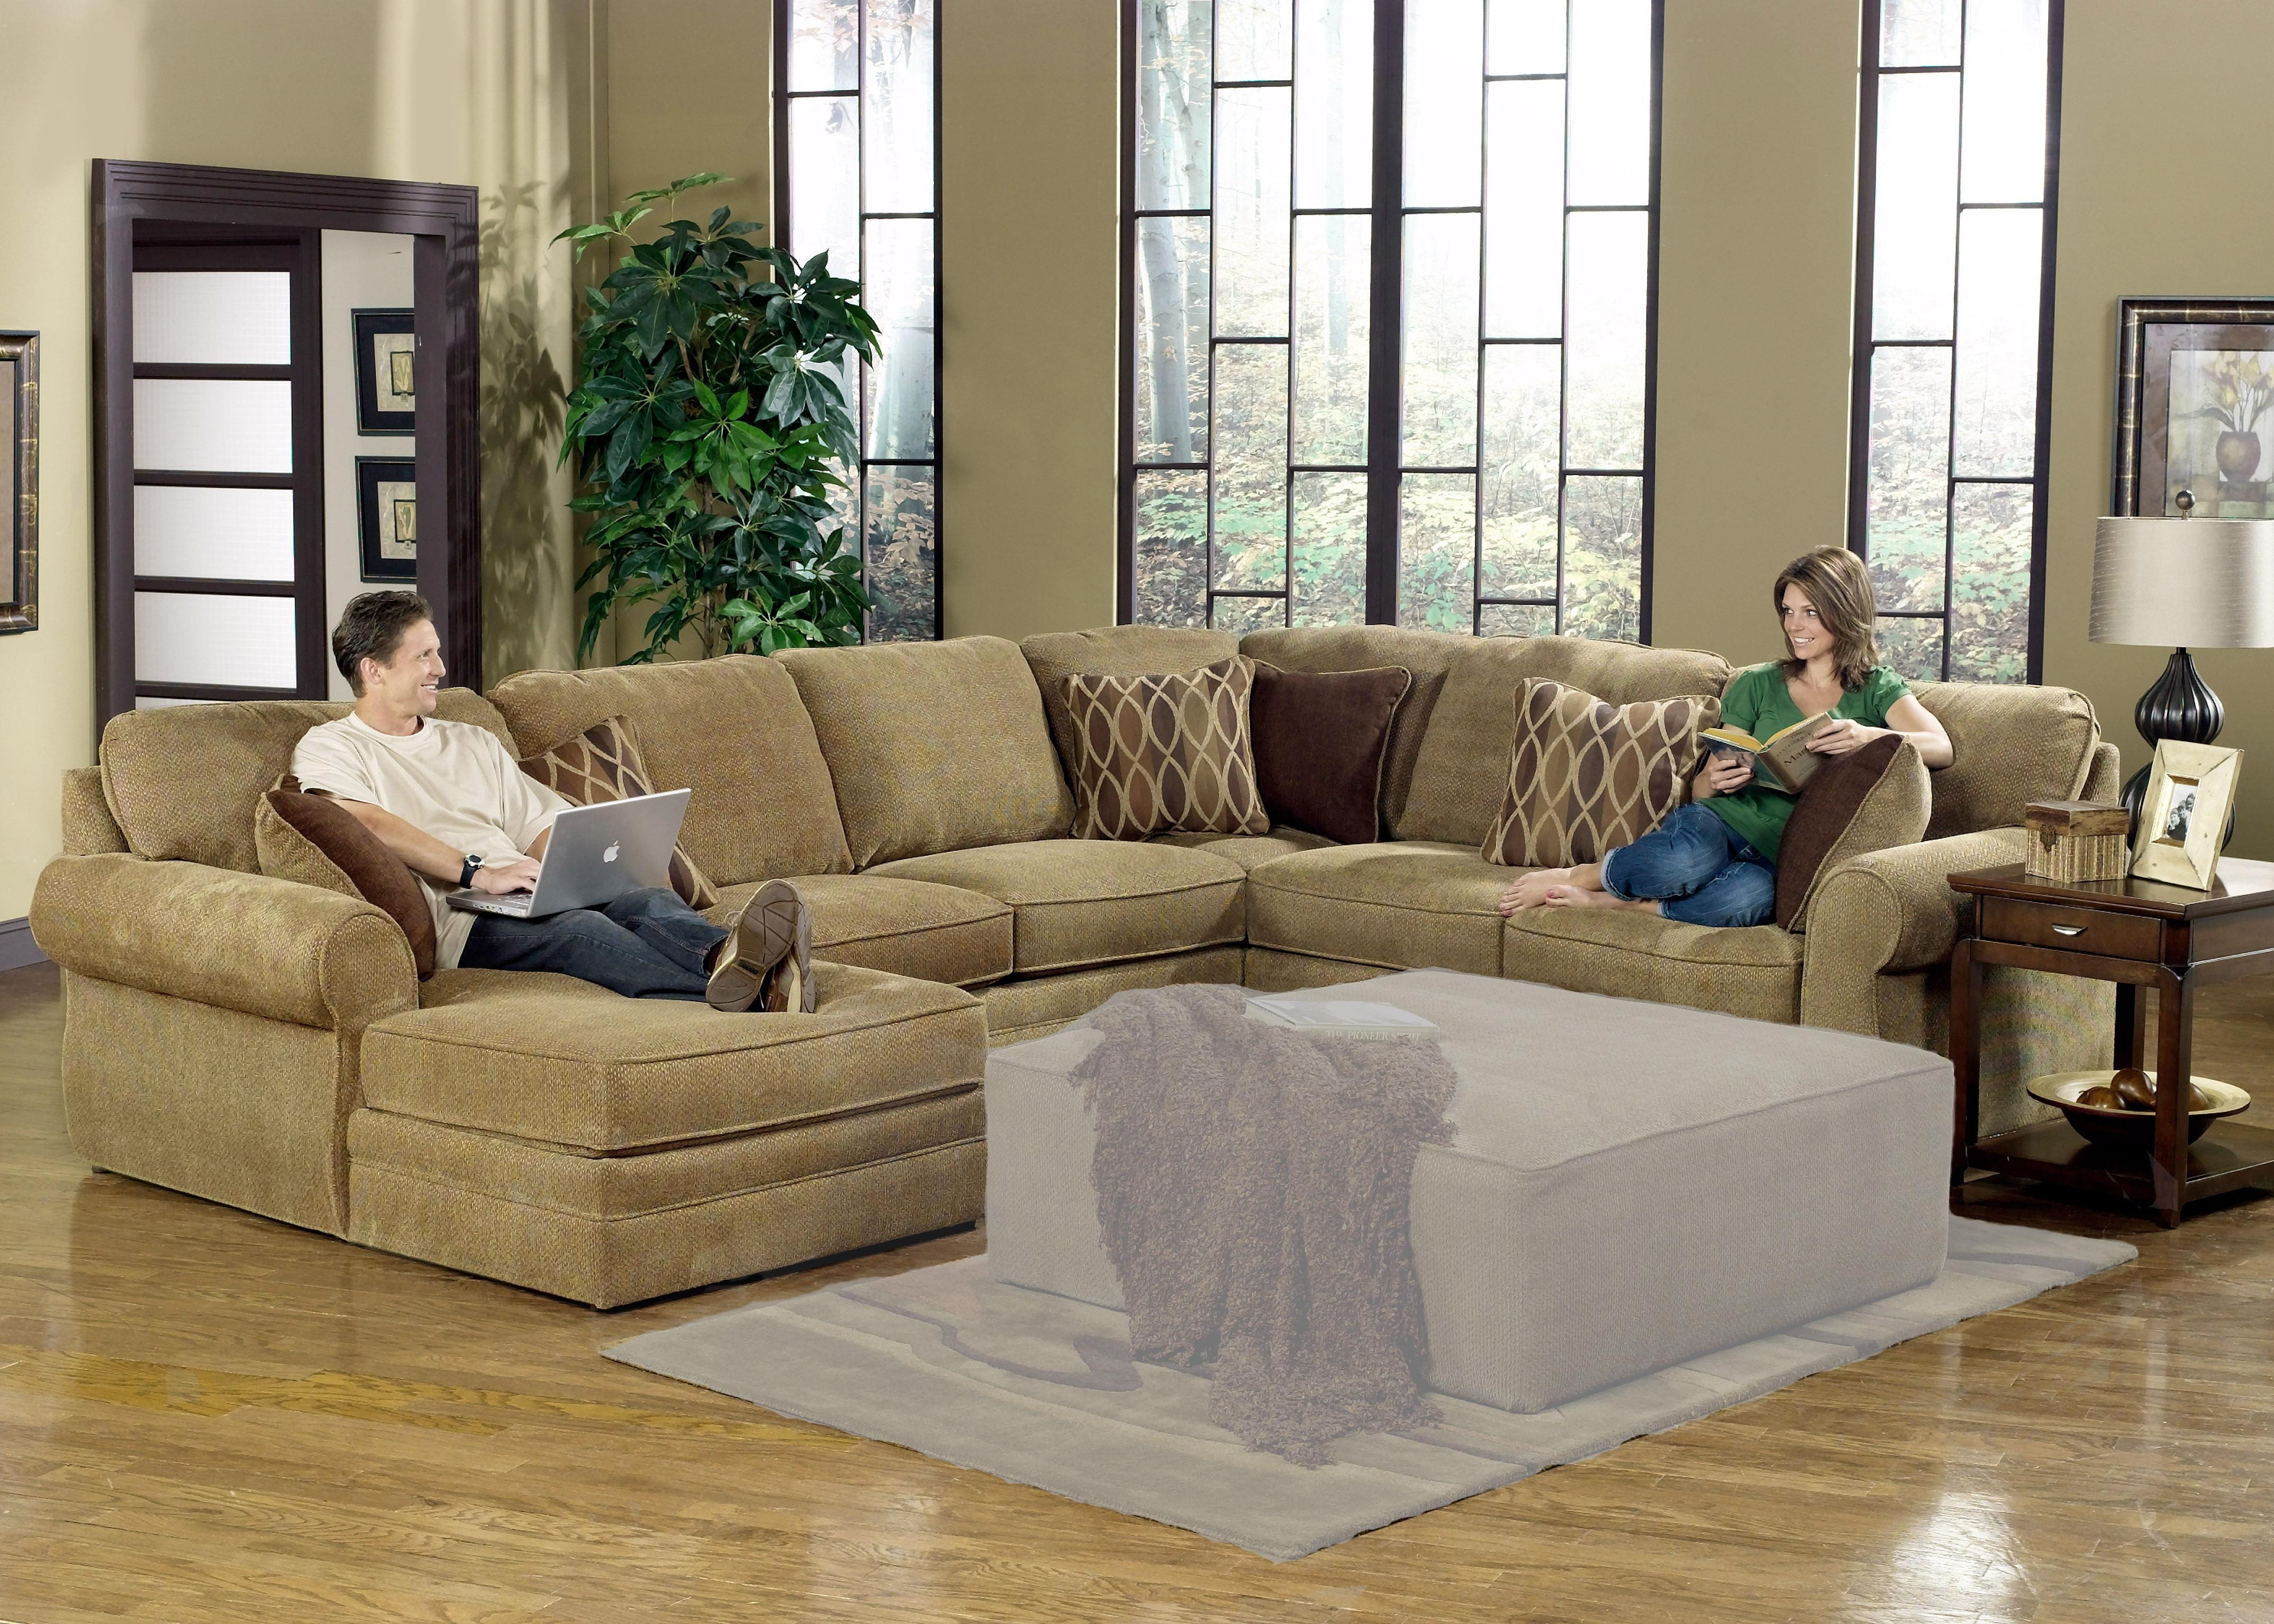 Fascinating U Shaped Sectional Sofas 123 Sofa Sectionals Canada Regarding Ontario Sectional Sofas (View 6 of 10)